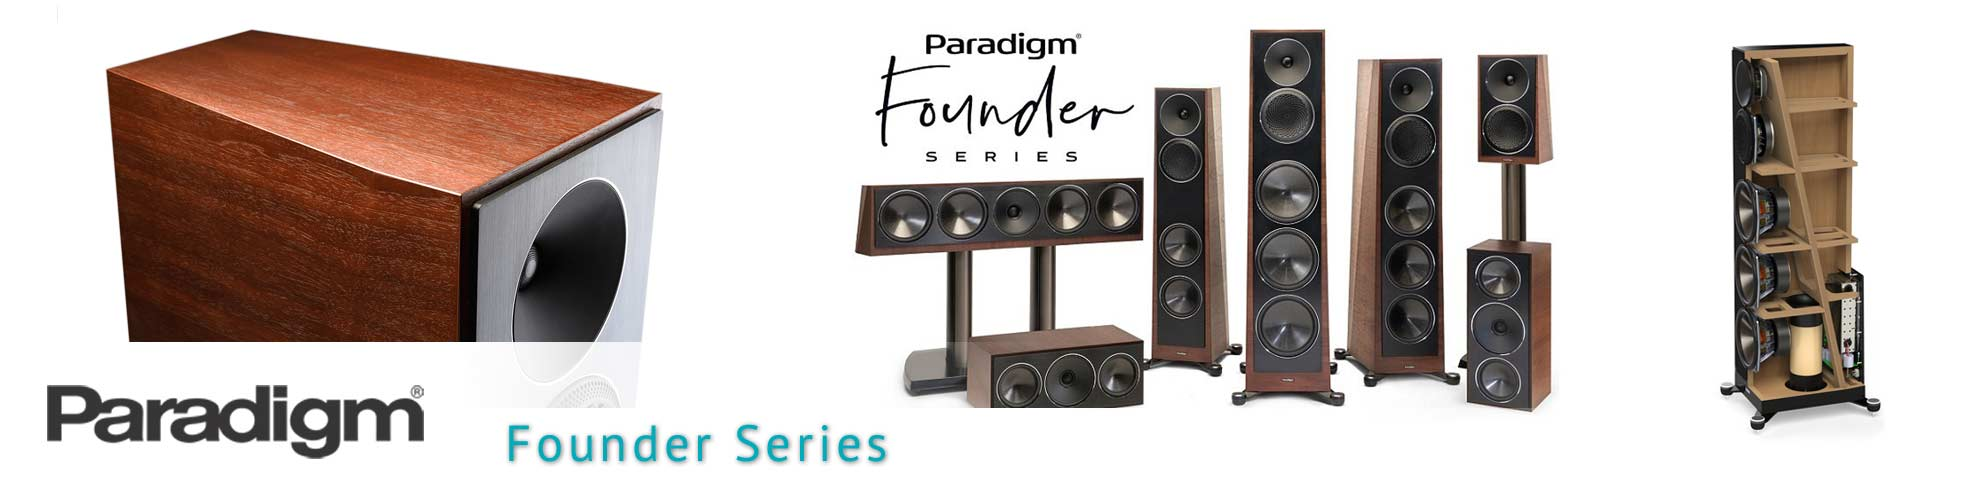 Paradigm Founder Series speakers for home stereo in Orlando, FL